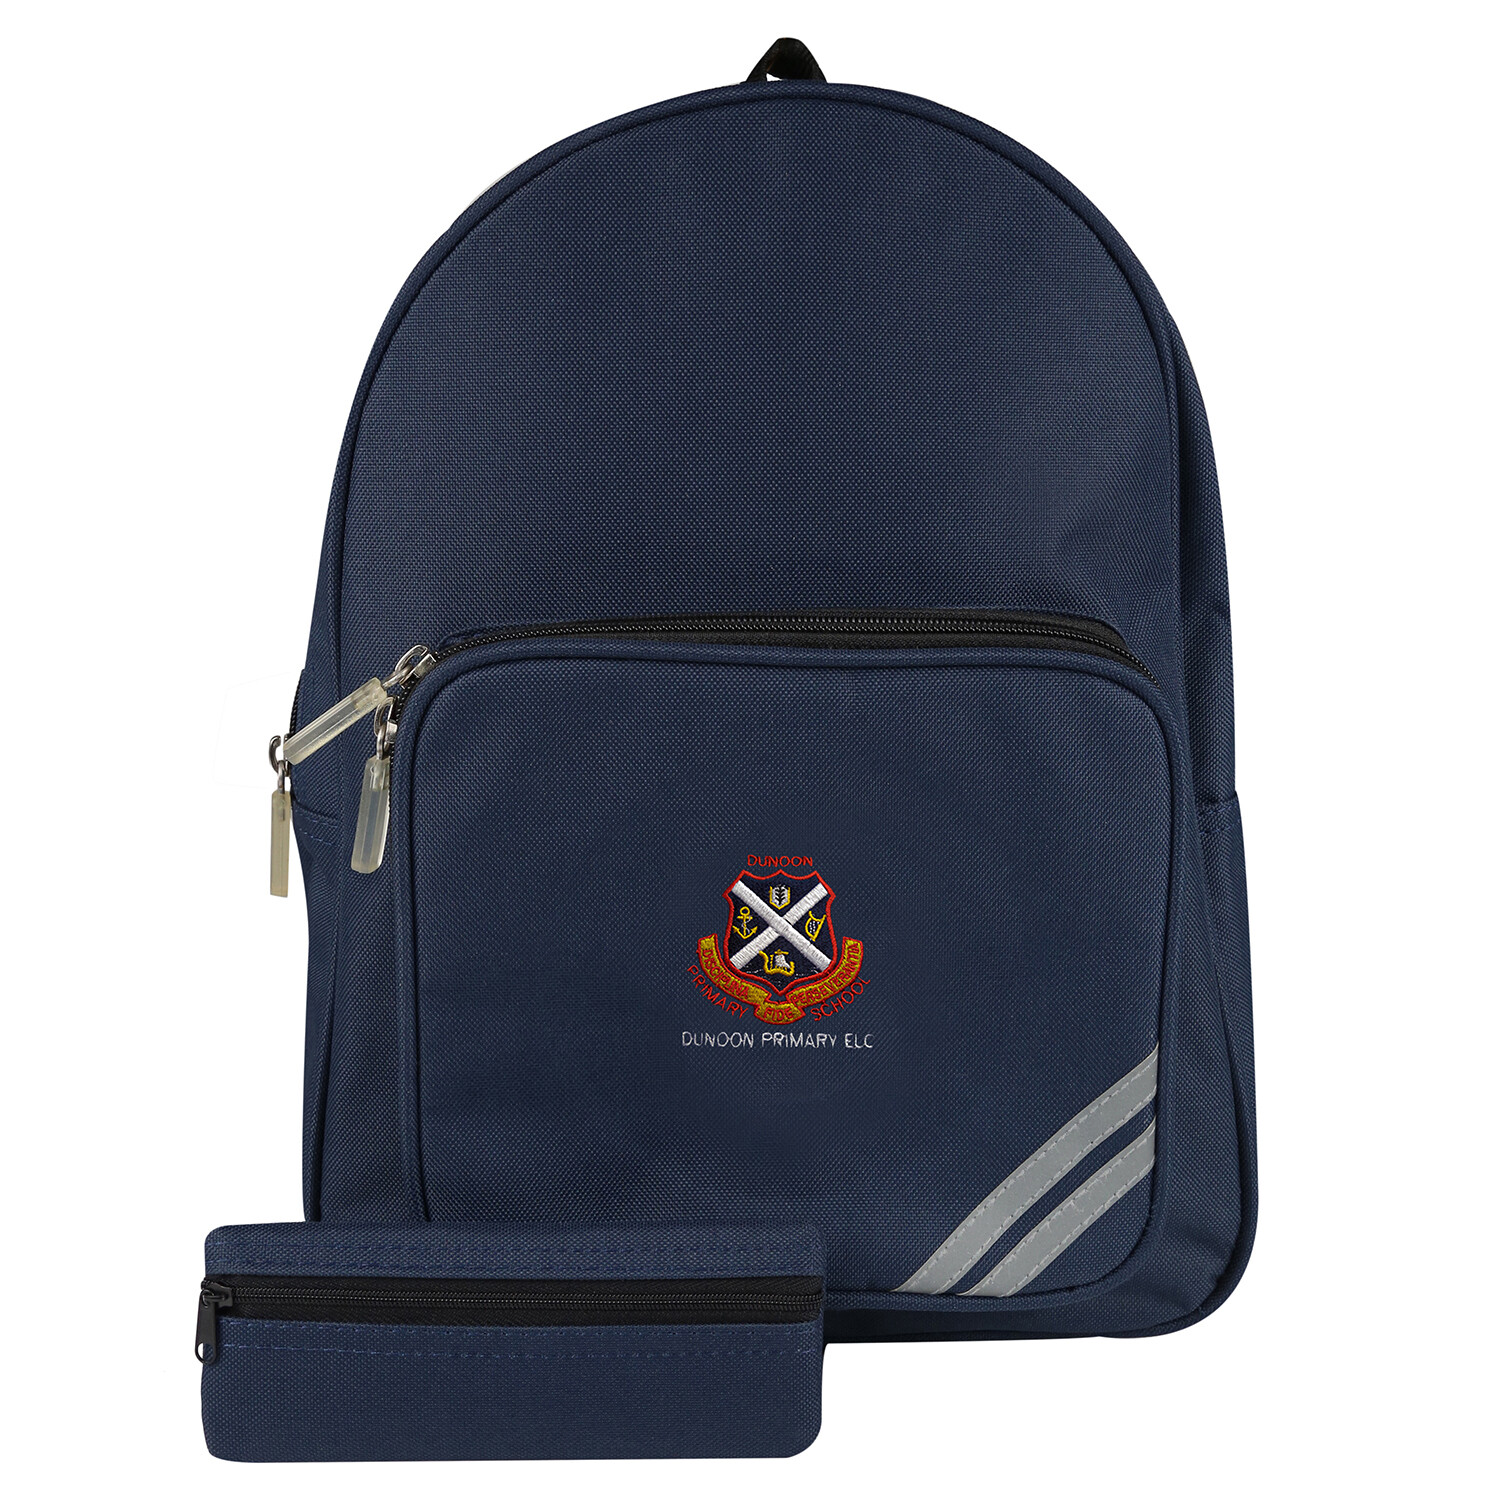 Dunoon Primary ELC Backpack